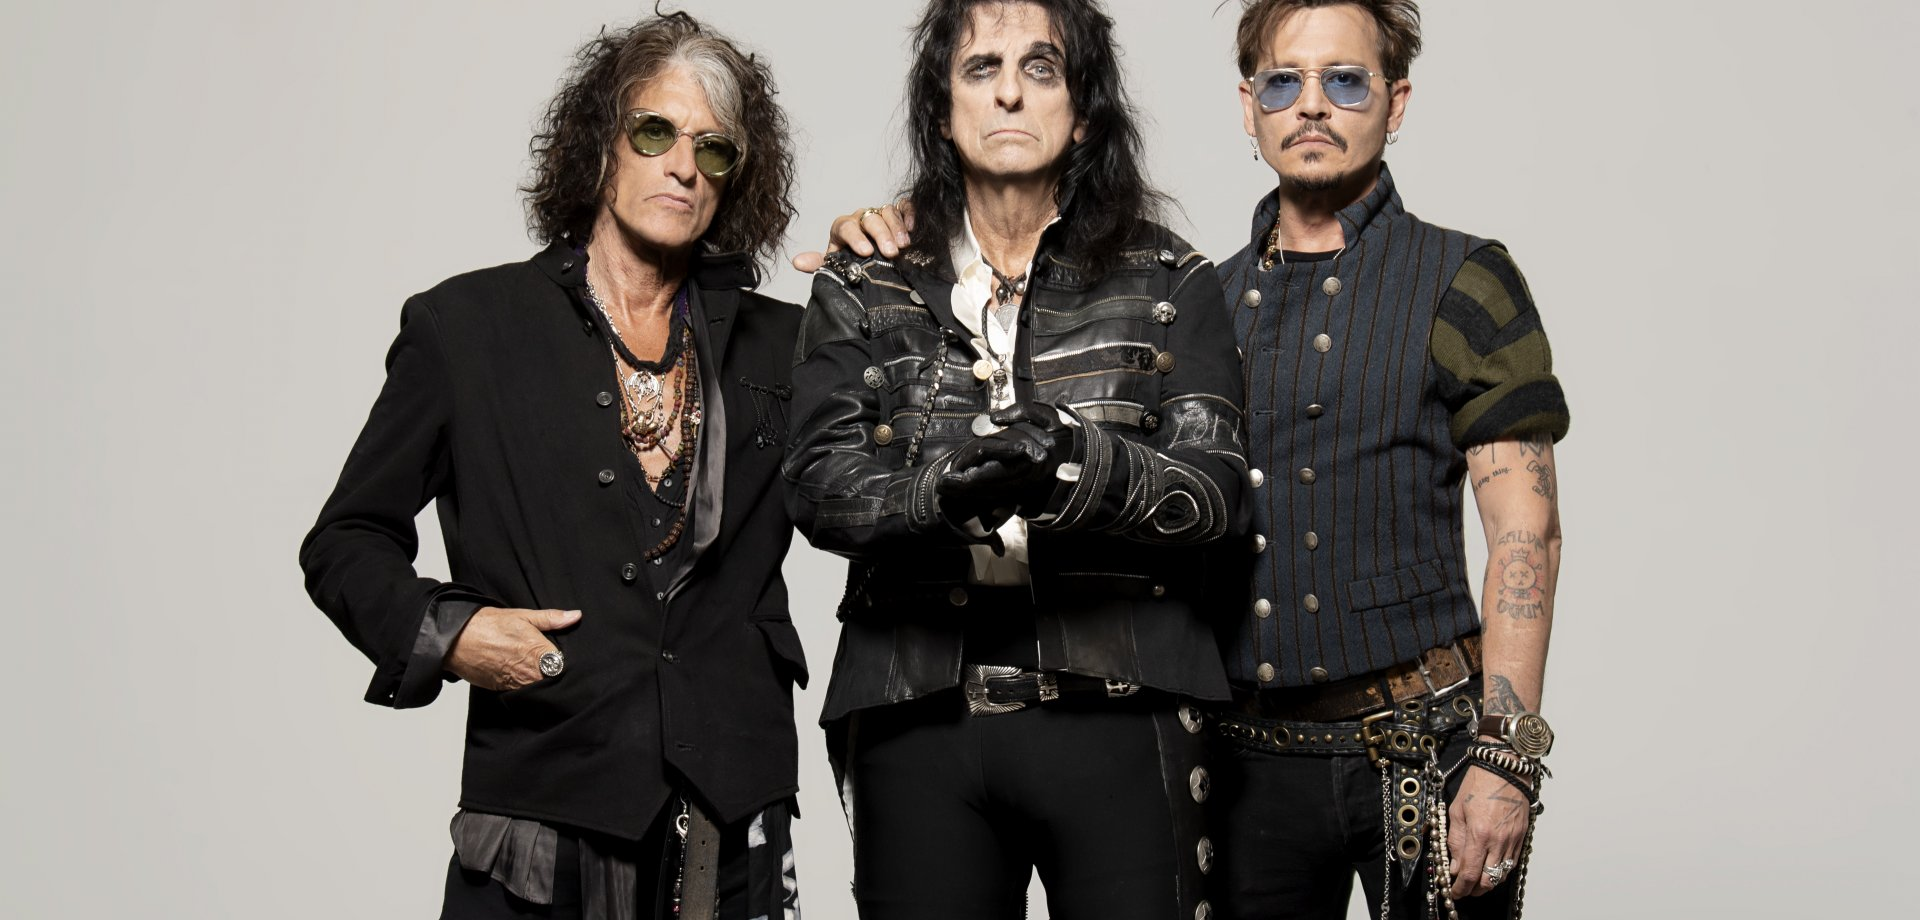 Hollywood Vampires, czyli Alice Cooper, Joe Perry i Johnny Depp